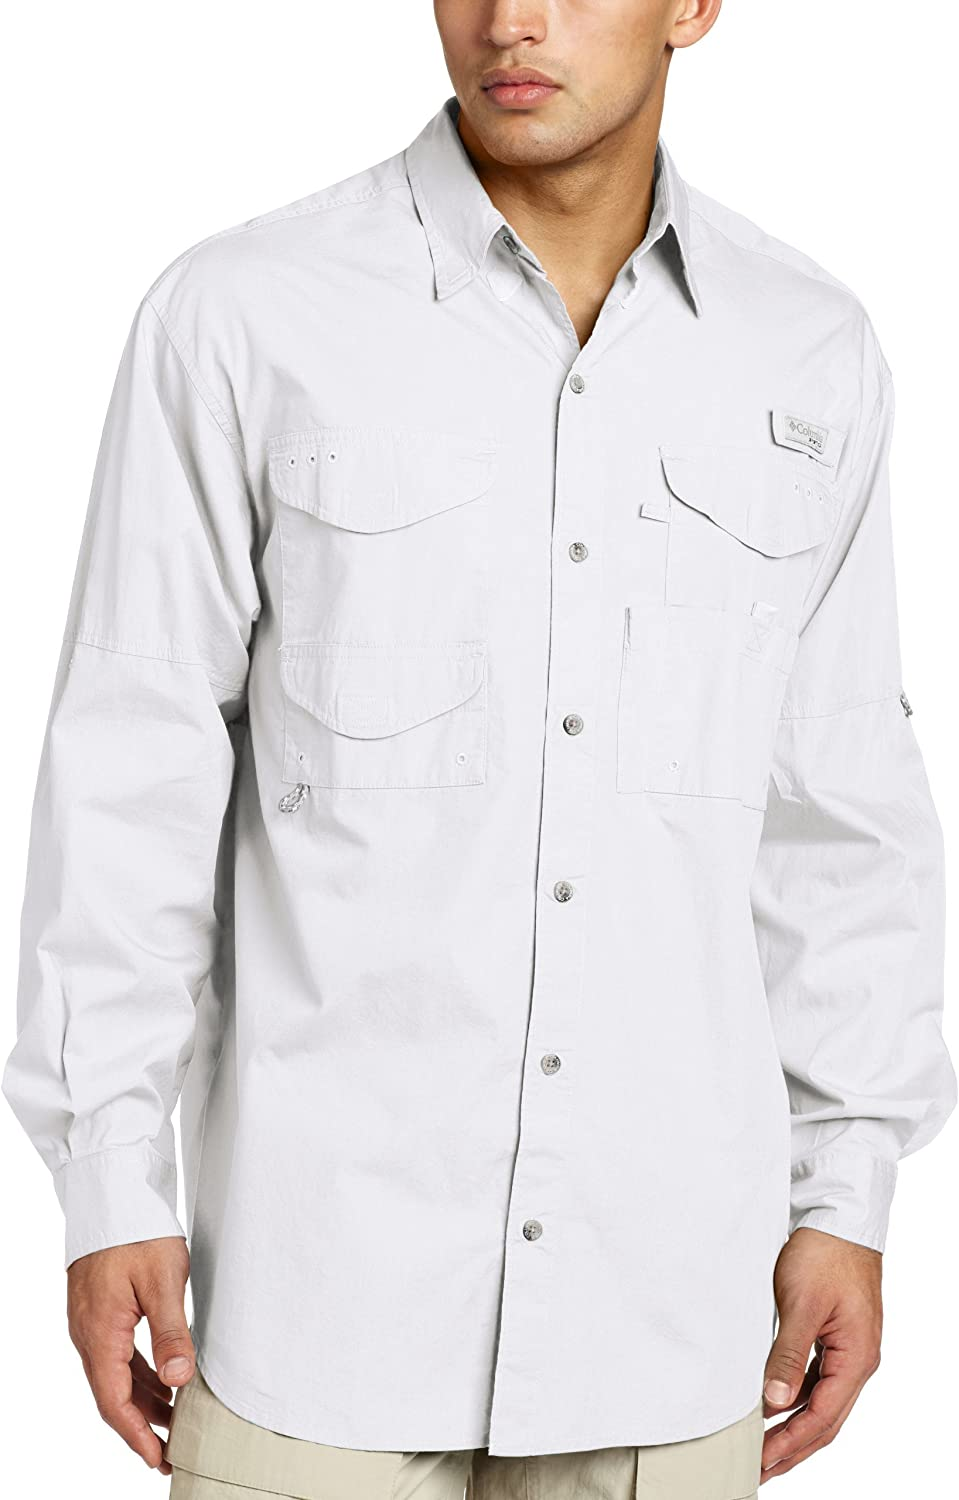 Columbia Men's Bonehead Long Sleeve Shirt Tall,White,LT